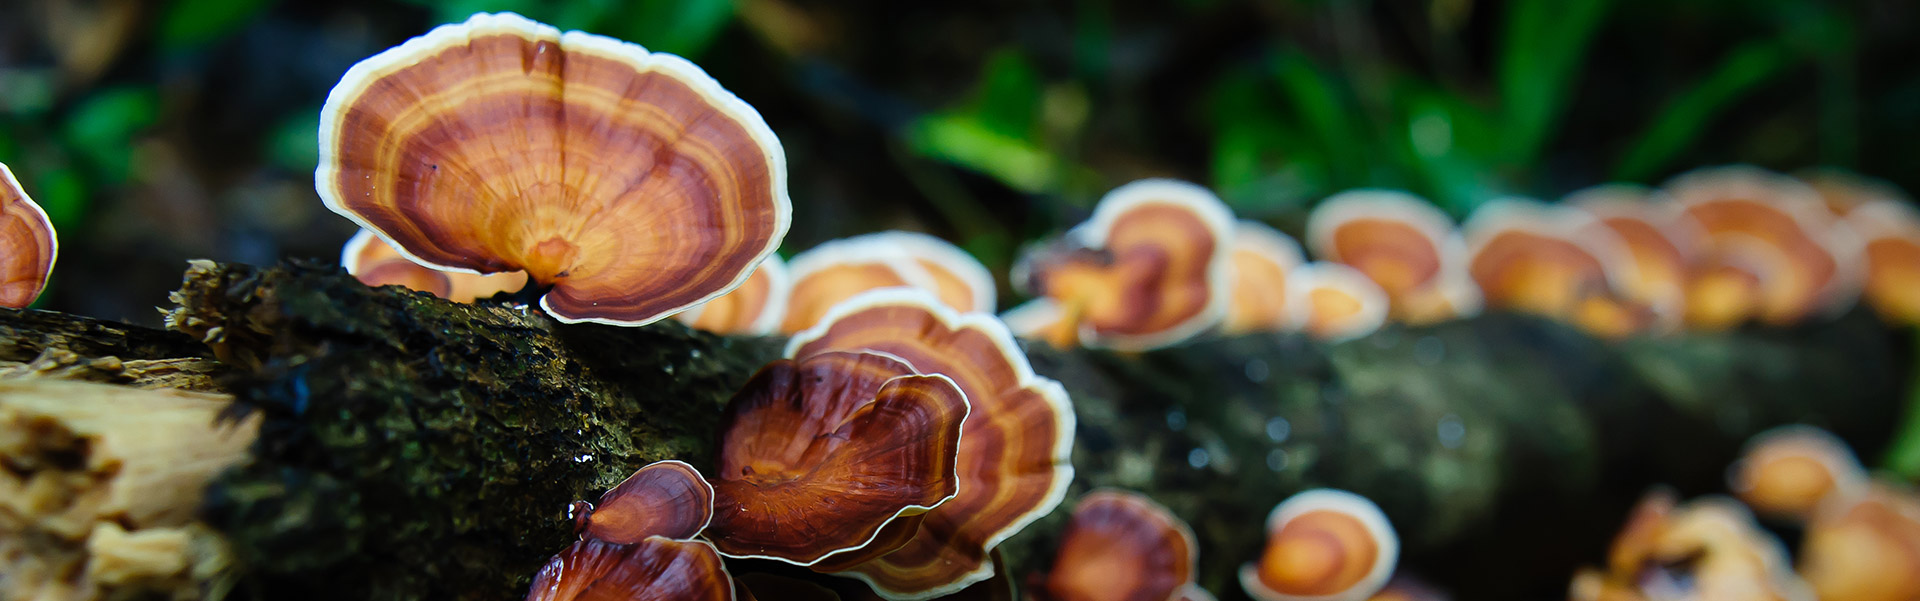 Mushrooms at Khao Sok National Park